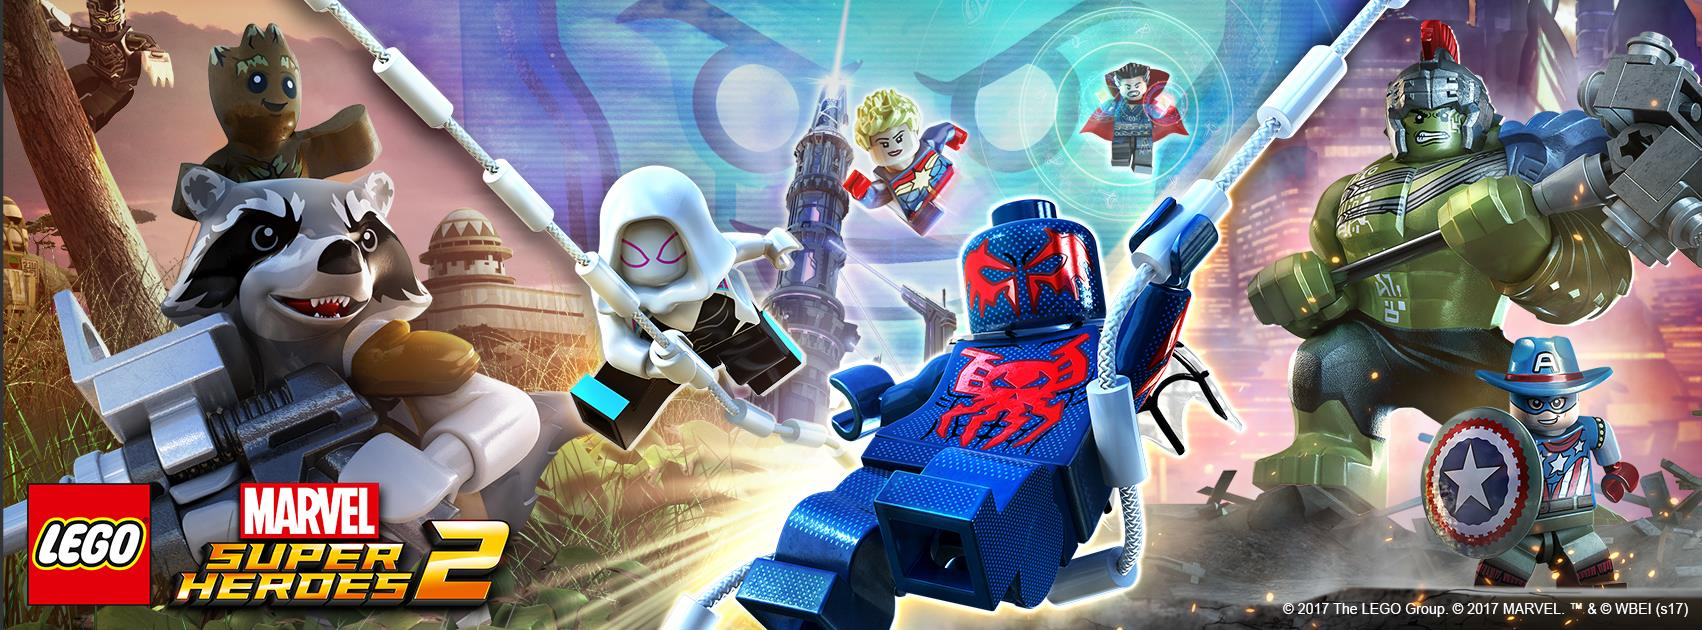 LEGO: Marvel Super Heroes 2 Announced; Features Four-Player Modes